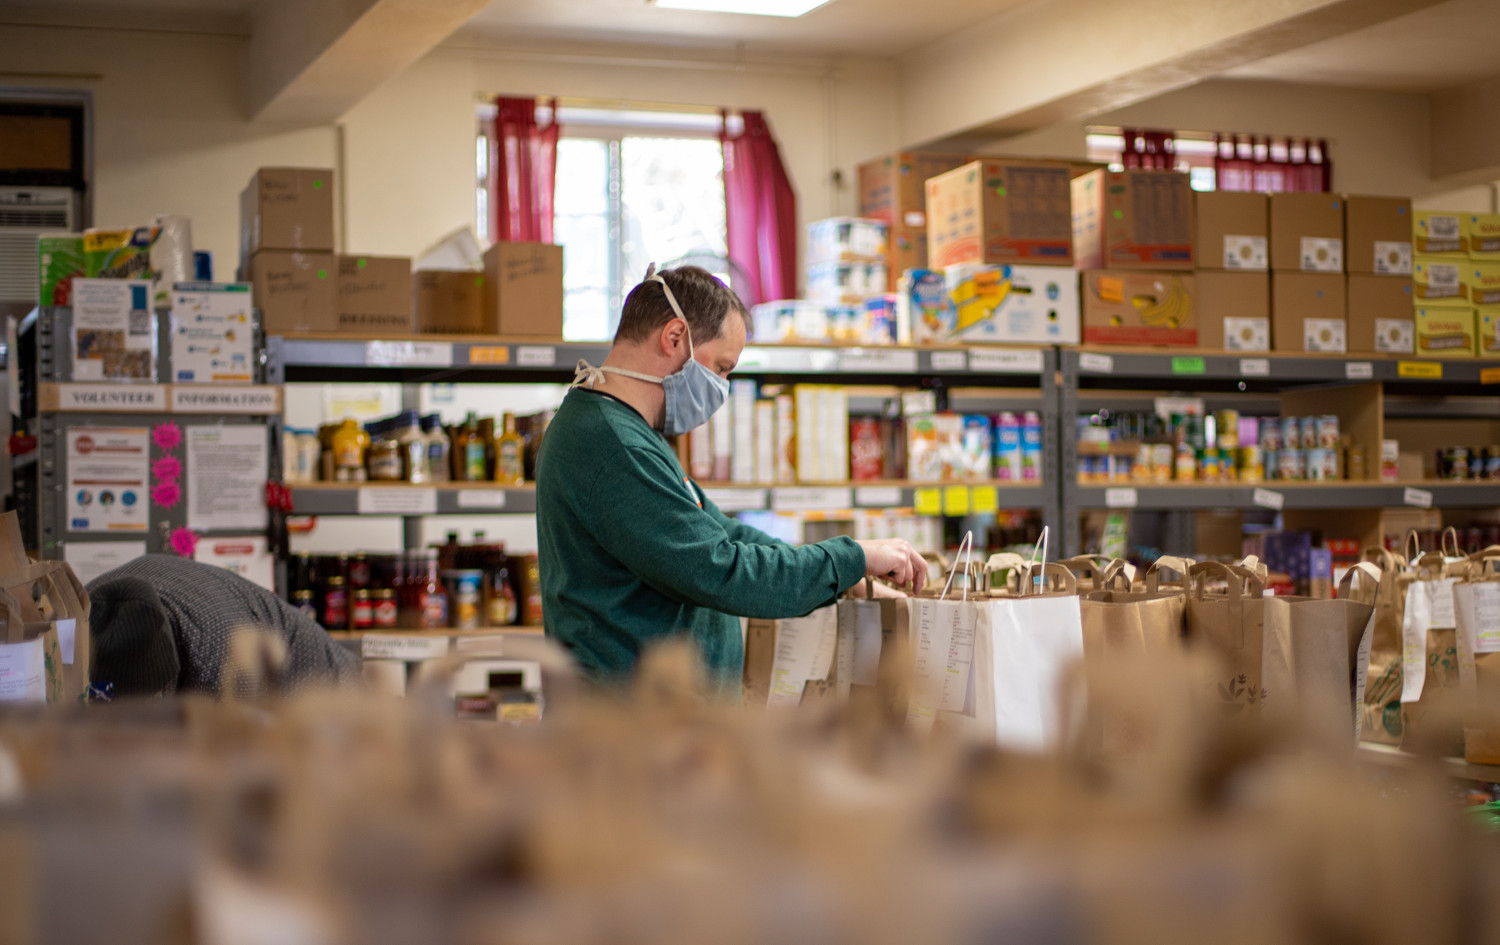 Hunger Relief Organizations Must Reevaluate Efforts, says Duke University and WhyHunger Study